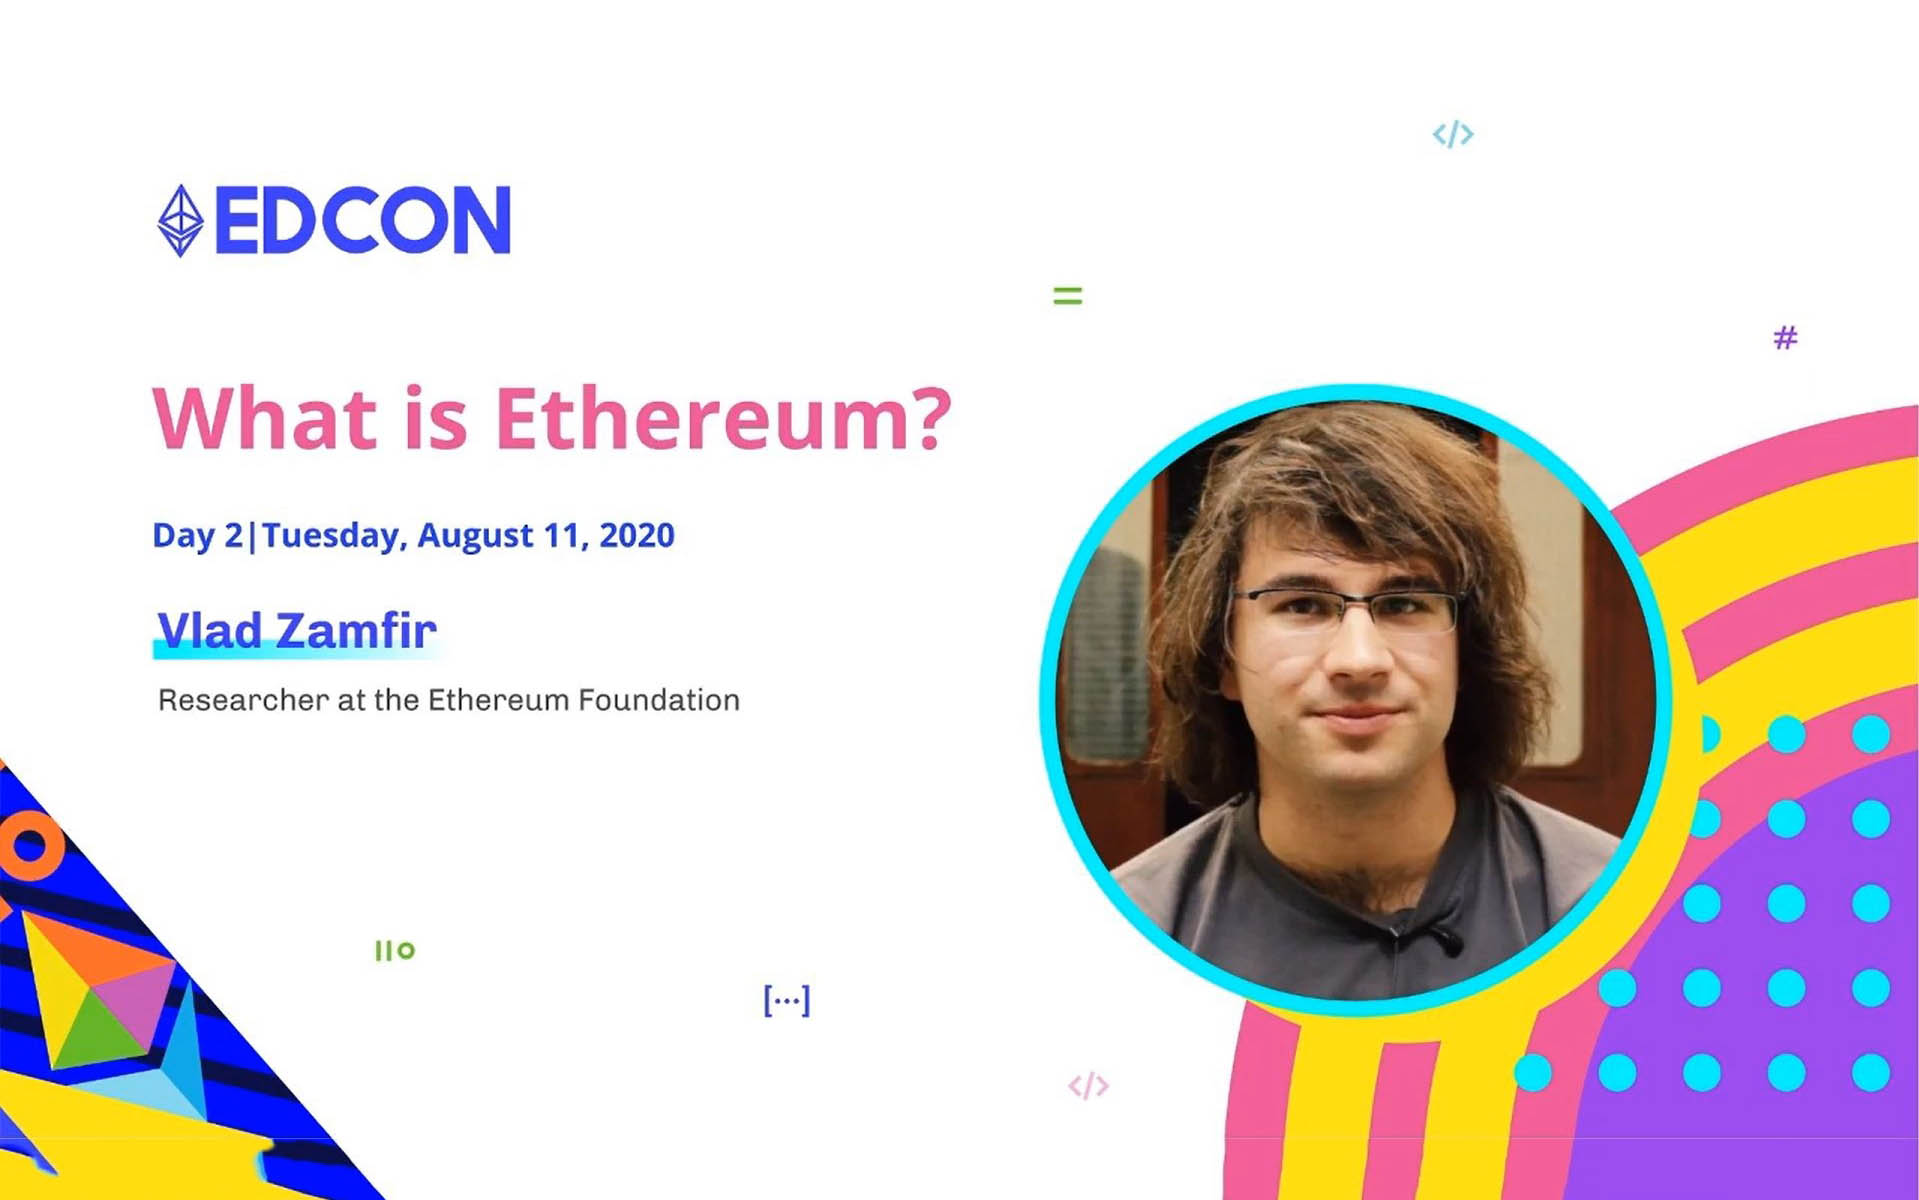 Vlad Zamfir: What Is Ethereum?